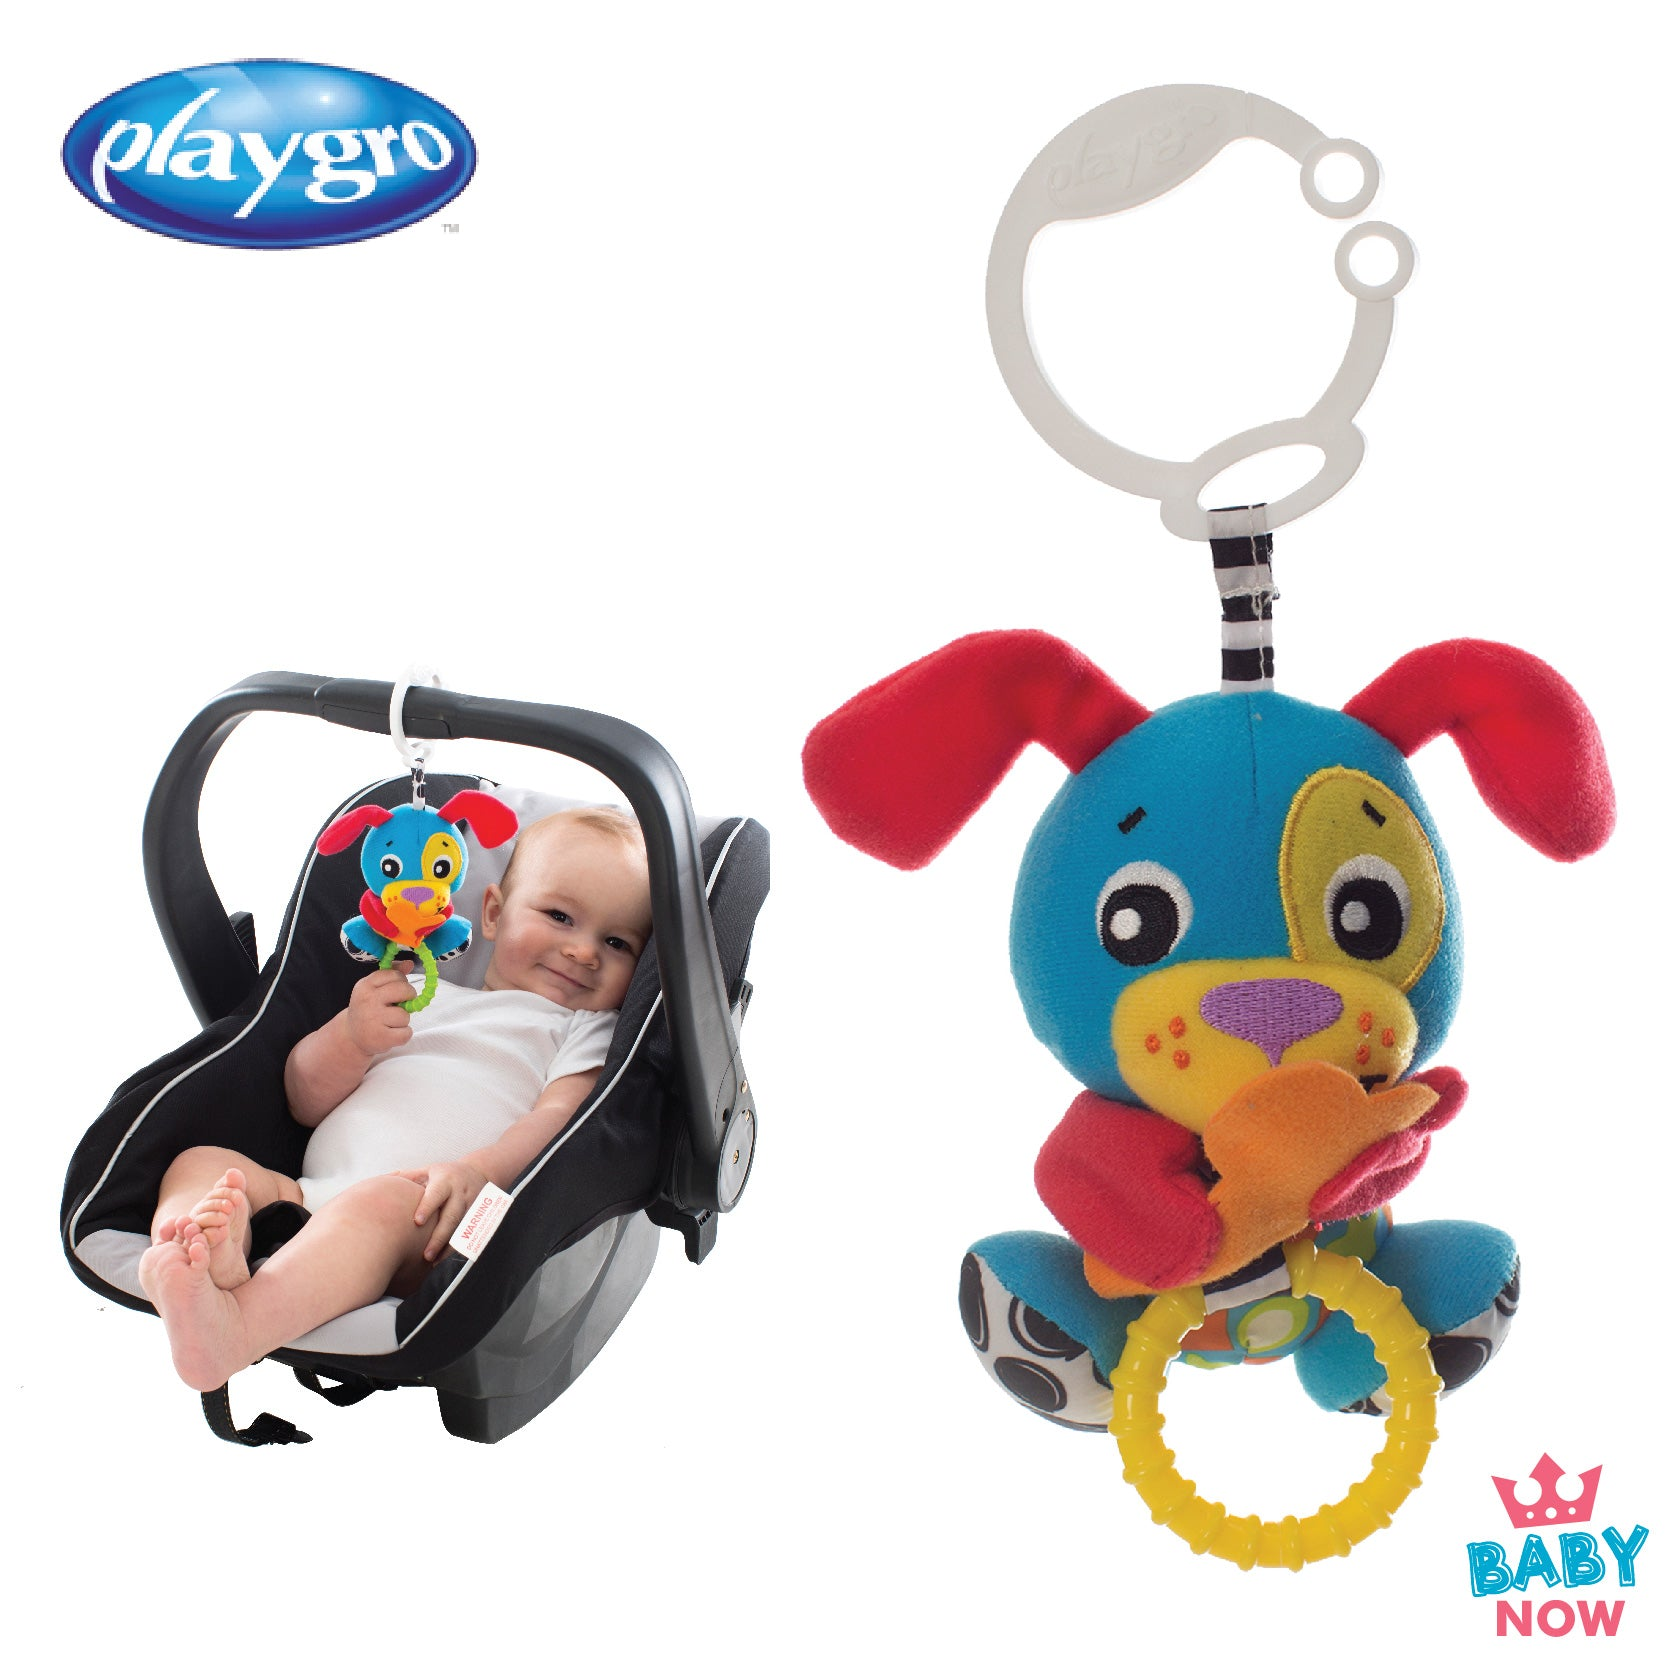 PG0185471 Playgro Peek-A-Boo Wiggling Puppy